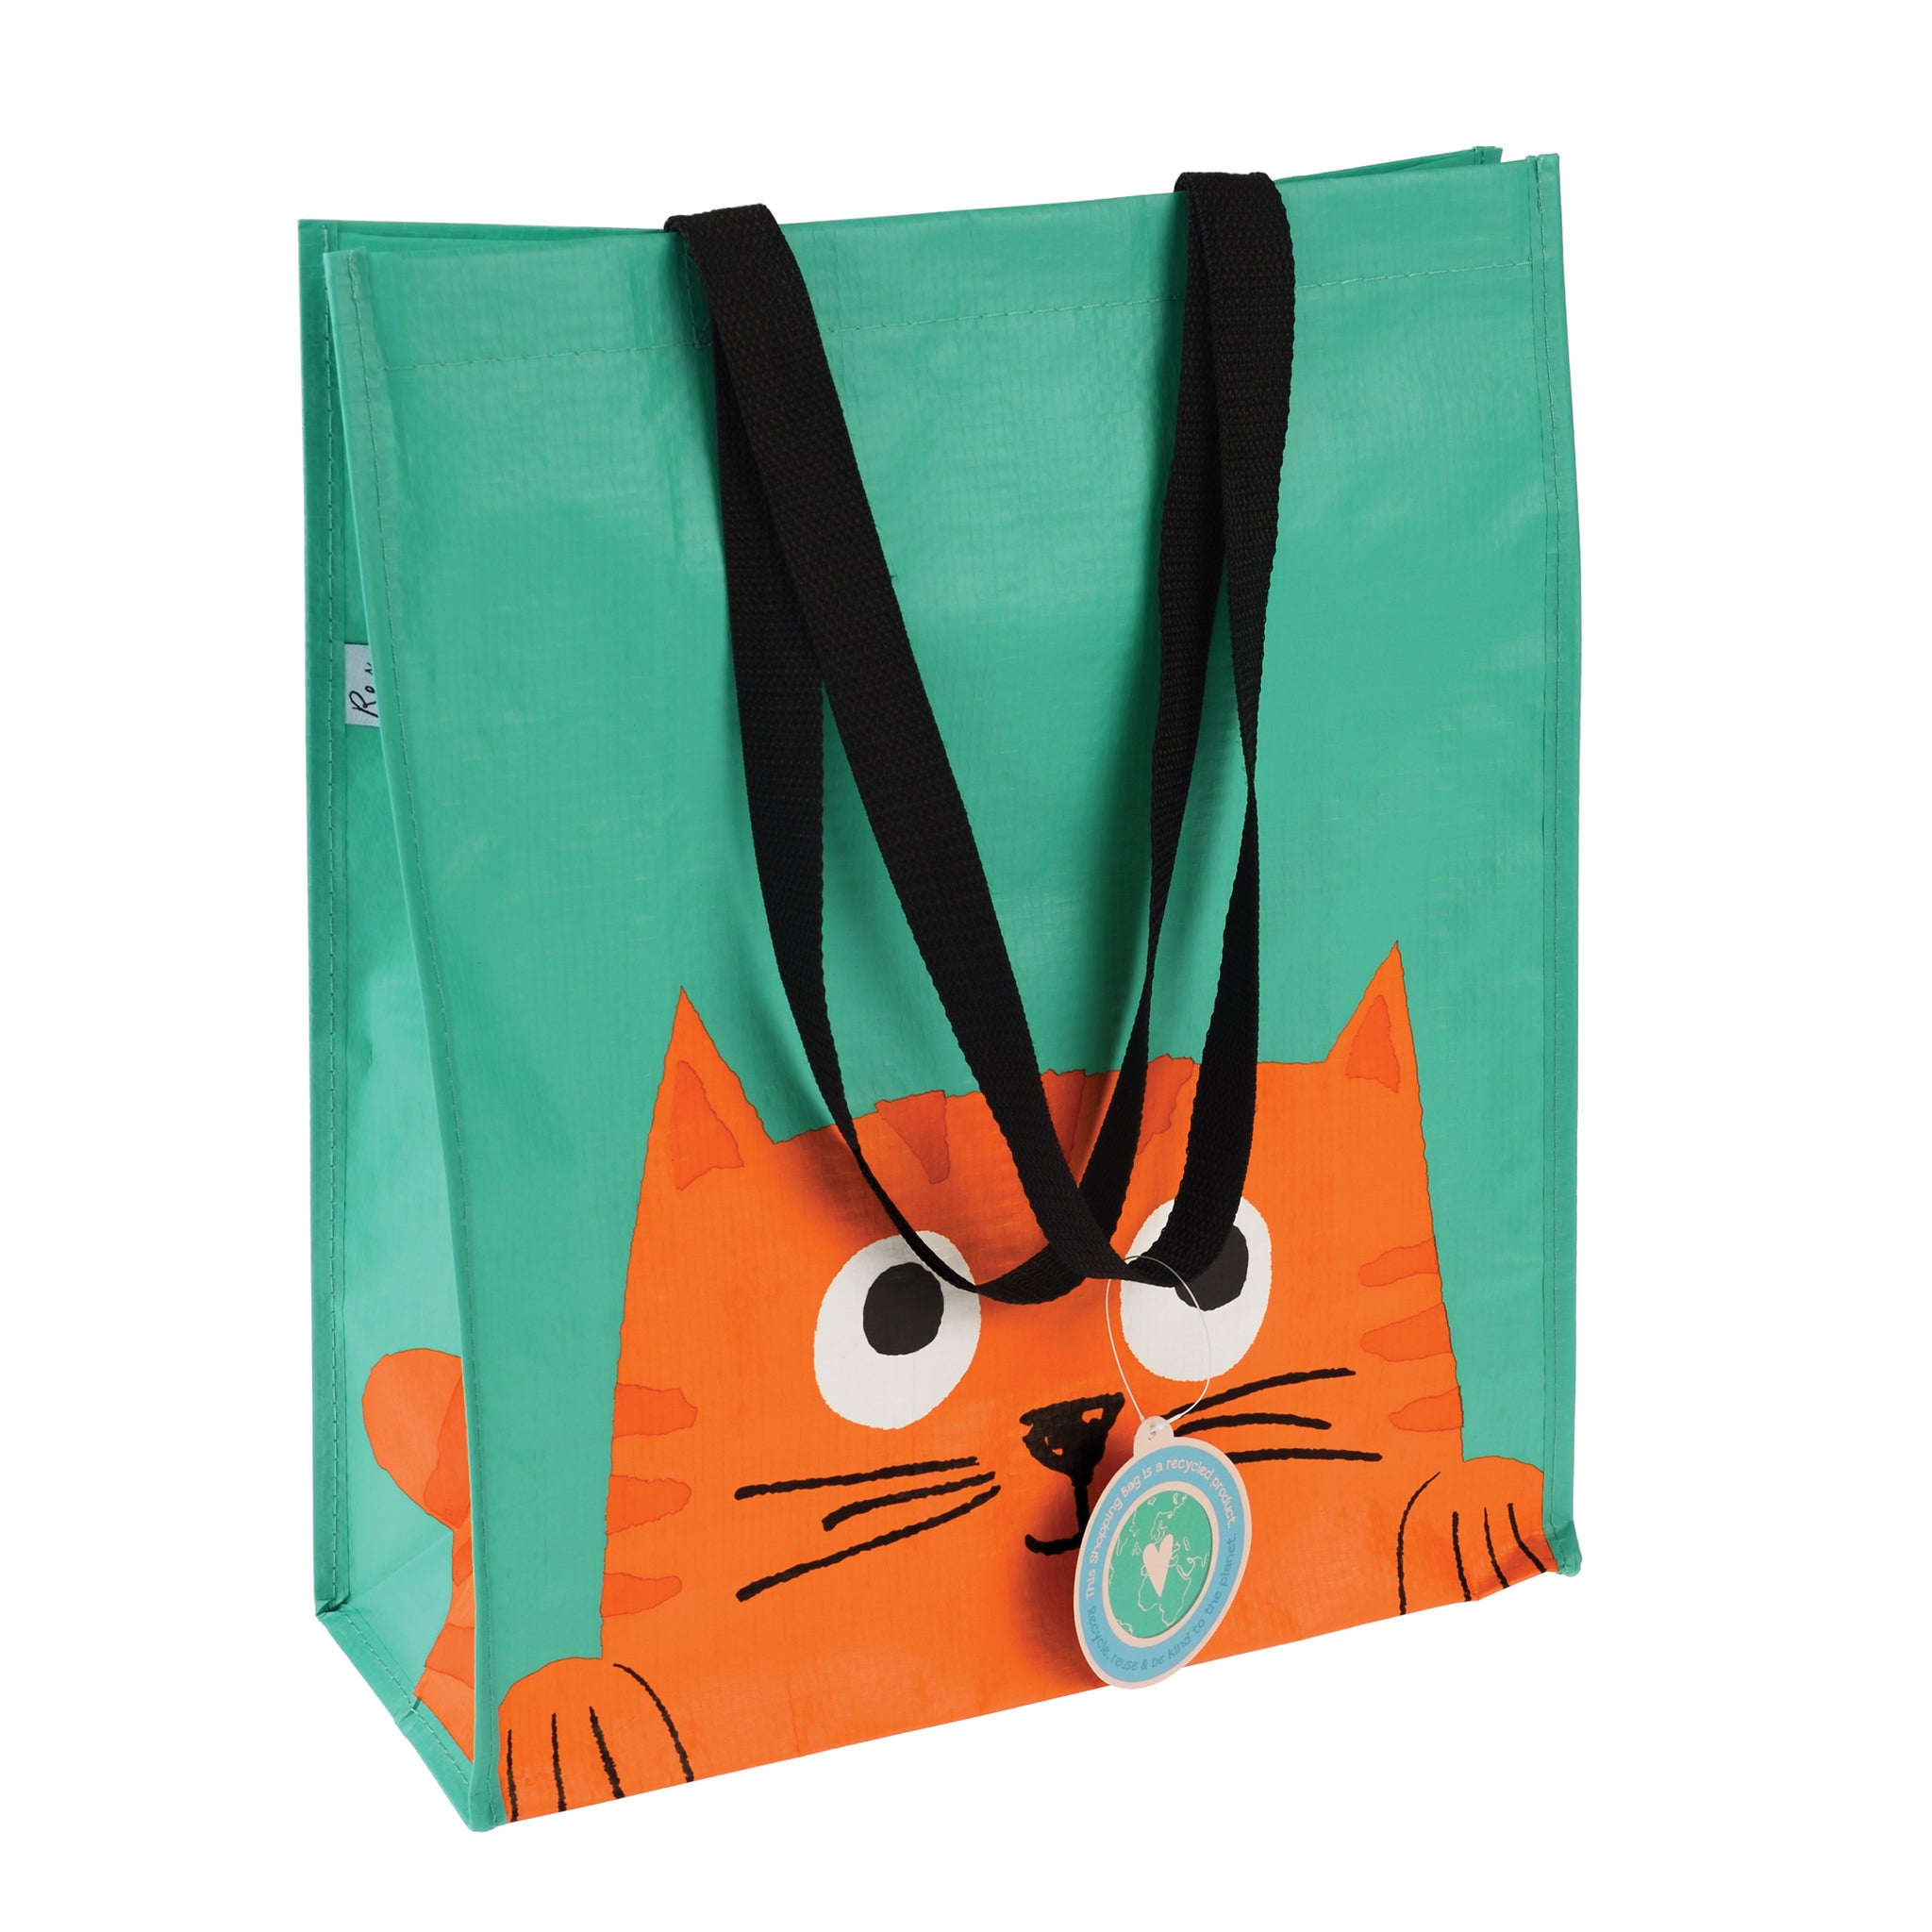 Chester the Cat shopping bag.